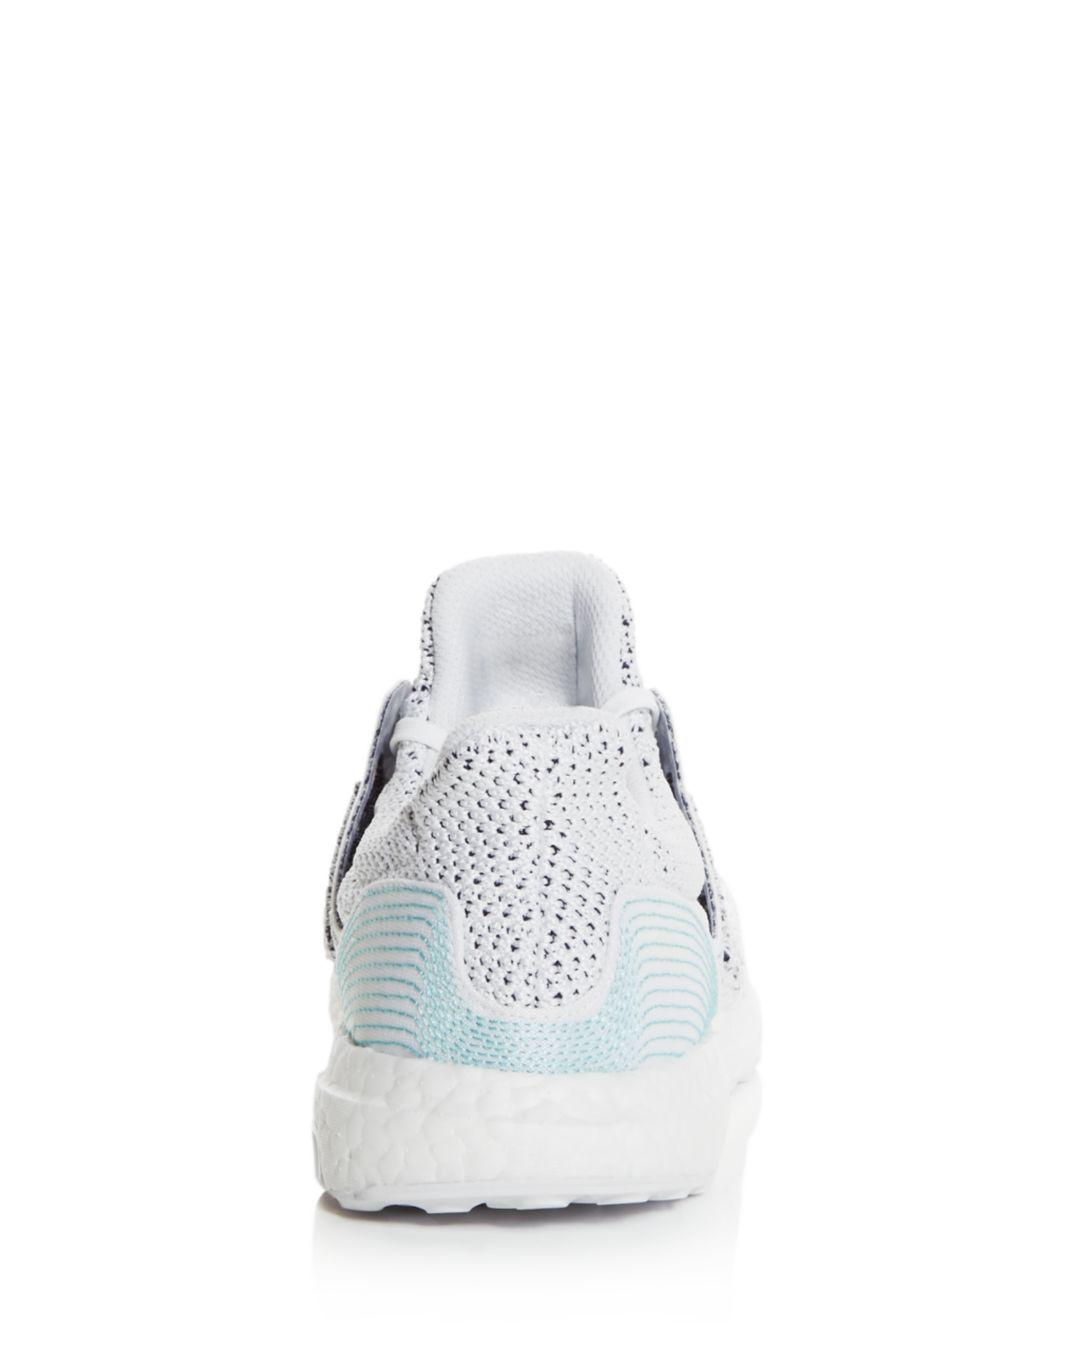 5b2fb6b89b273 Adidas - White Men s Ultraboost Parley Knit Lace Up Sneakers for Men -  Lyst. View fullscreen